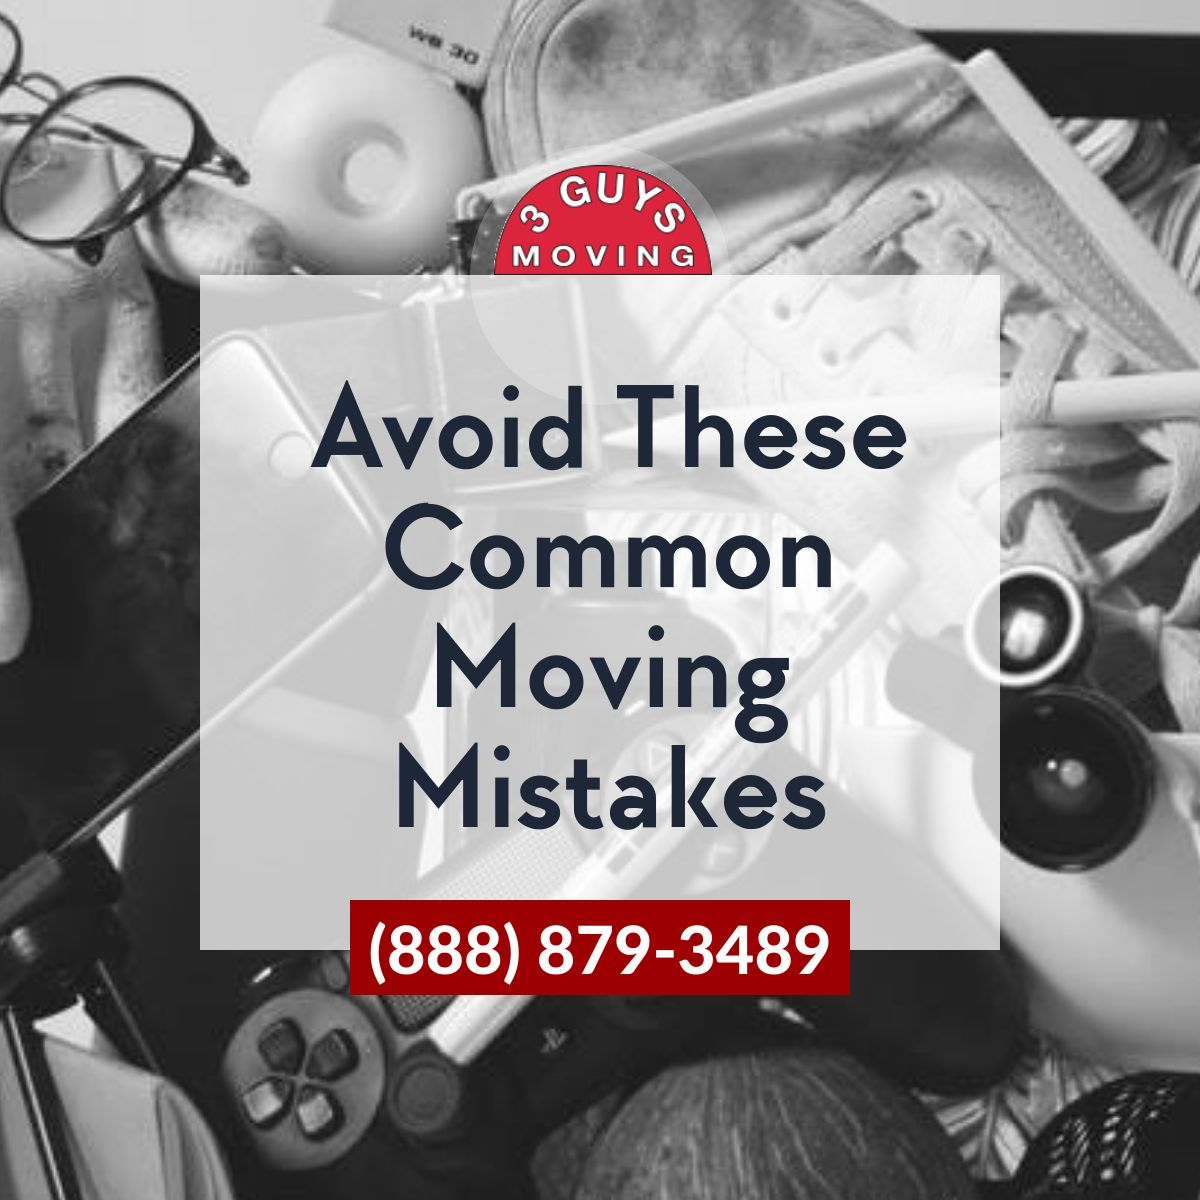 Common Moving Mistakes - Avoid These Common Moving Mistakes